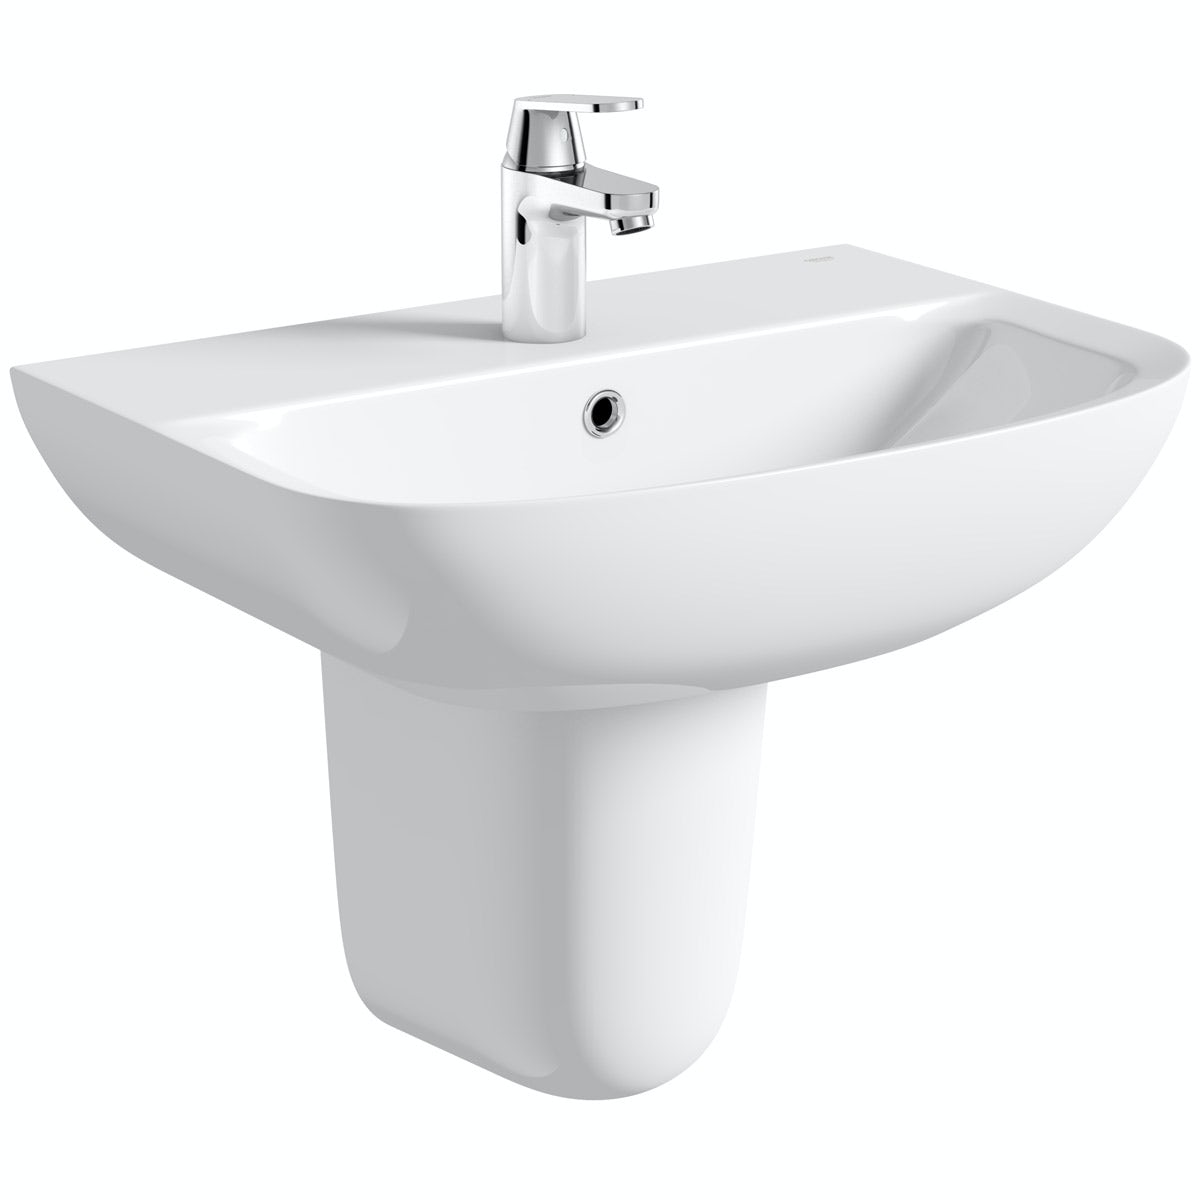 Grohe Bau 1 tap hole semi pedestal basin 600mm